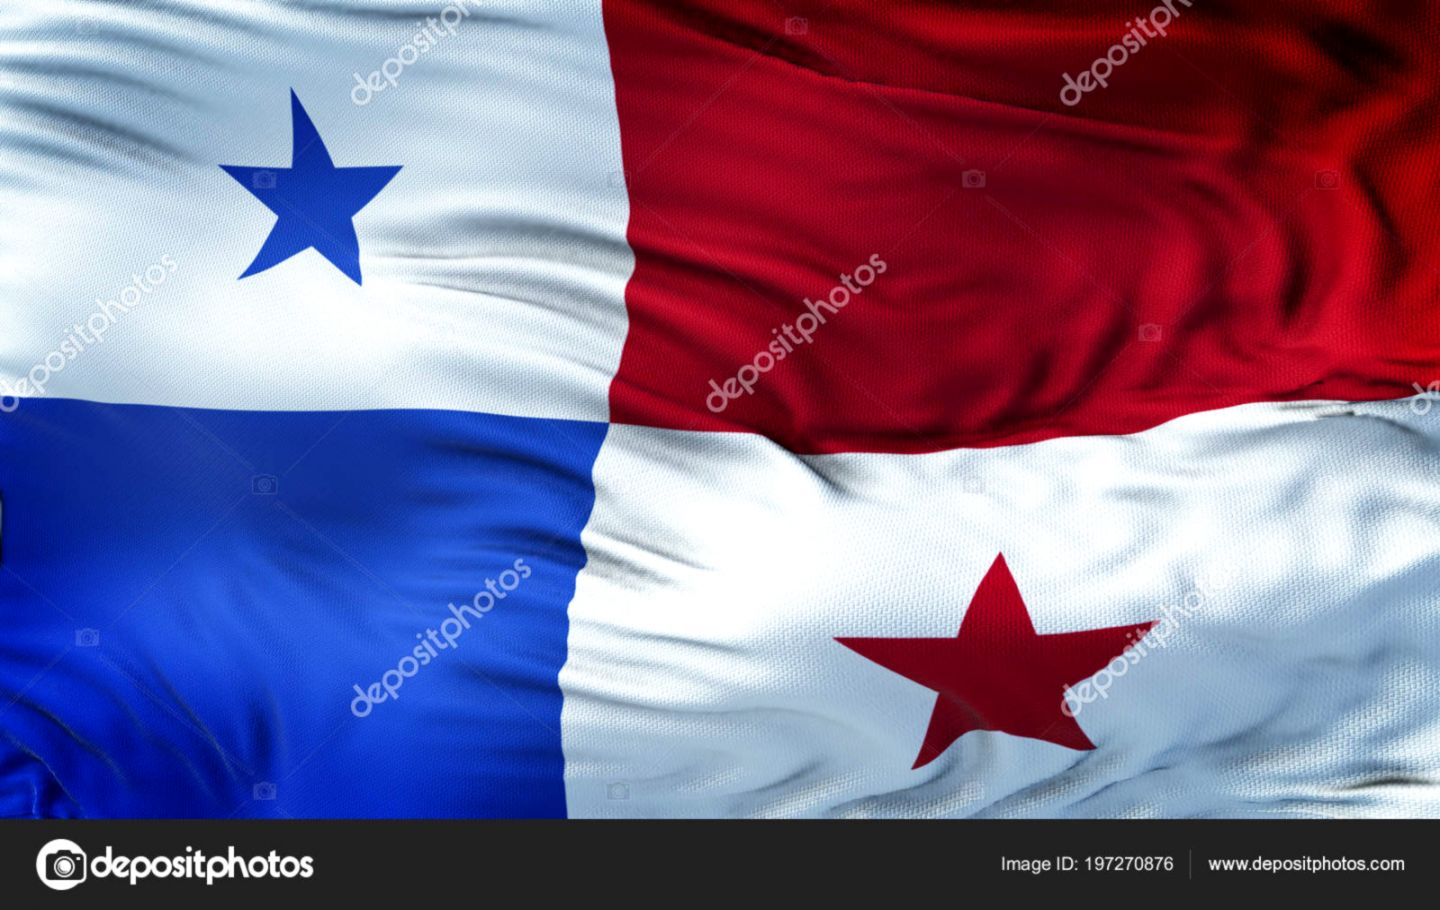 Panama Realistic Waving Flag Highly Detailed Fabric Texture